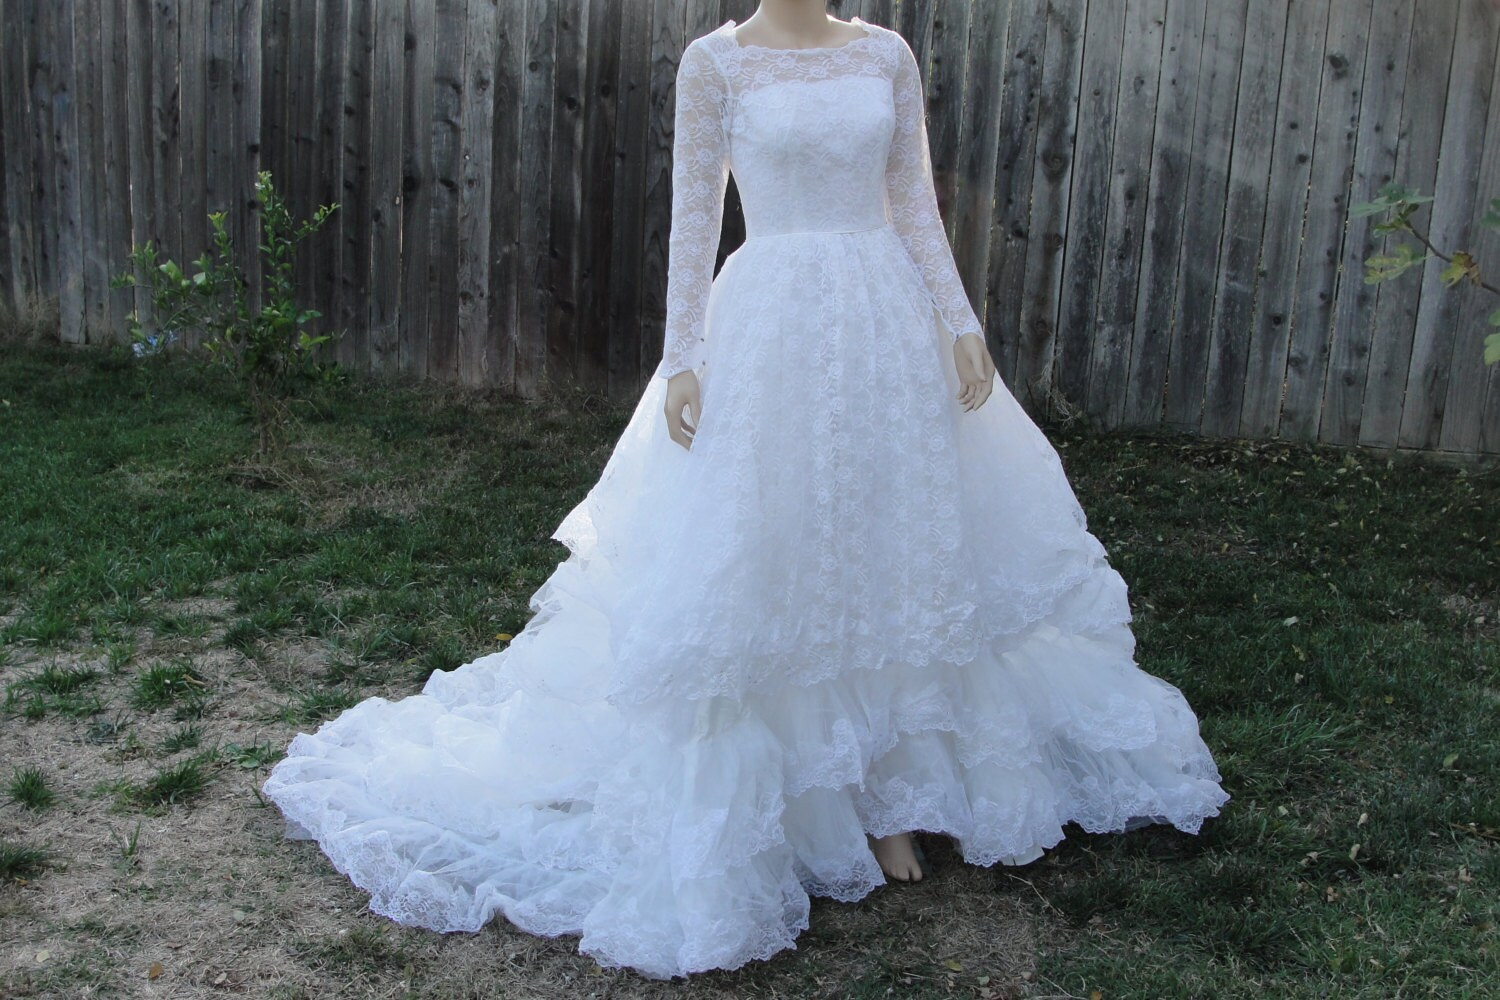 Vintage 1950s tulle lace wedding gown dress with back